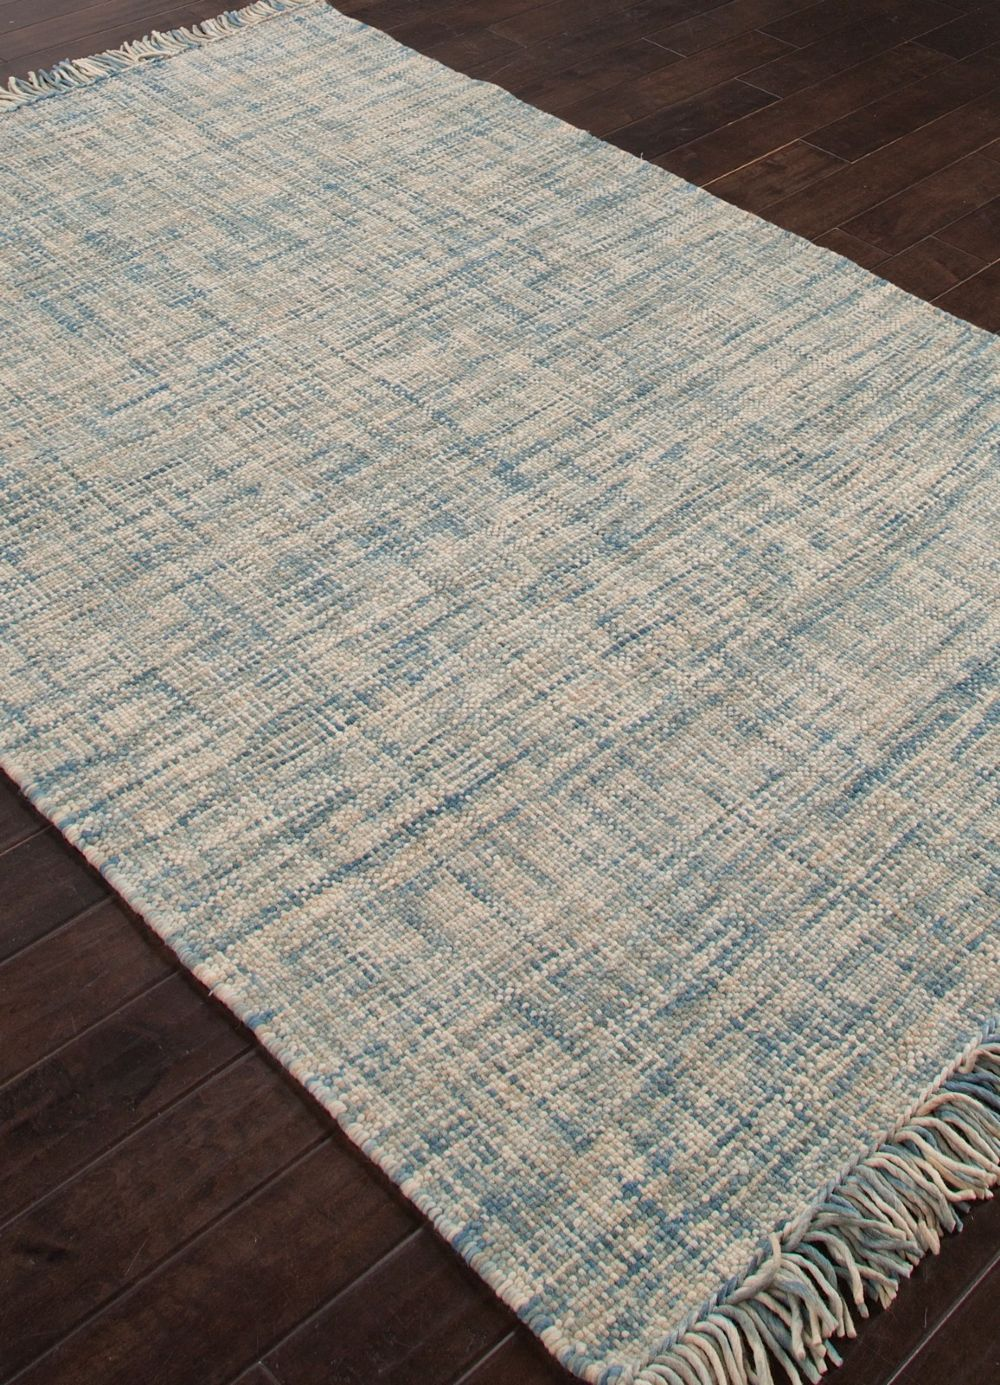 jaipur tweedy contemporary area rug collection